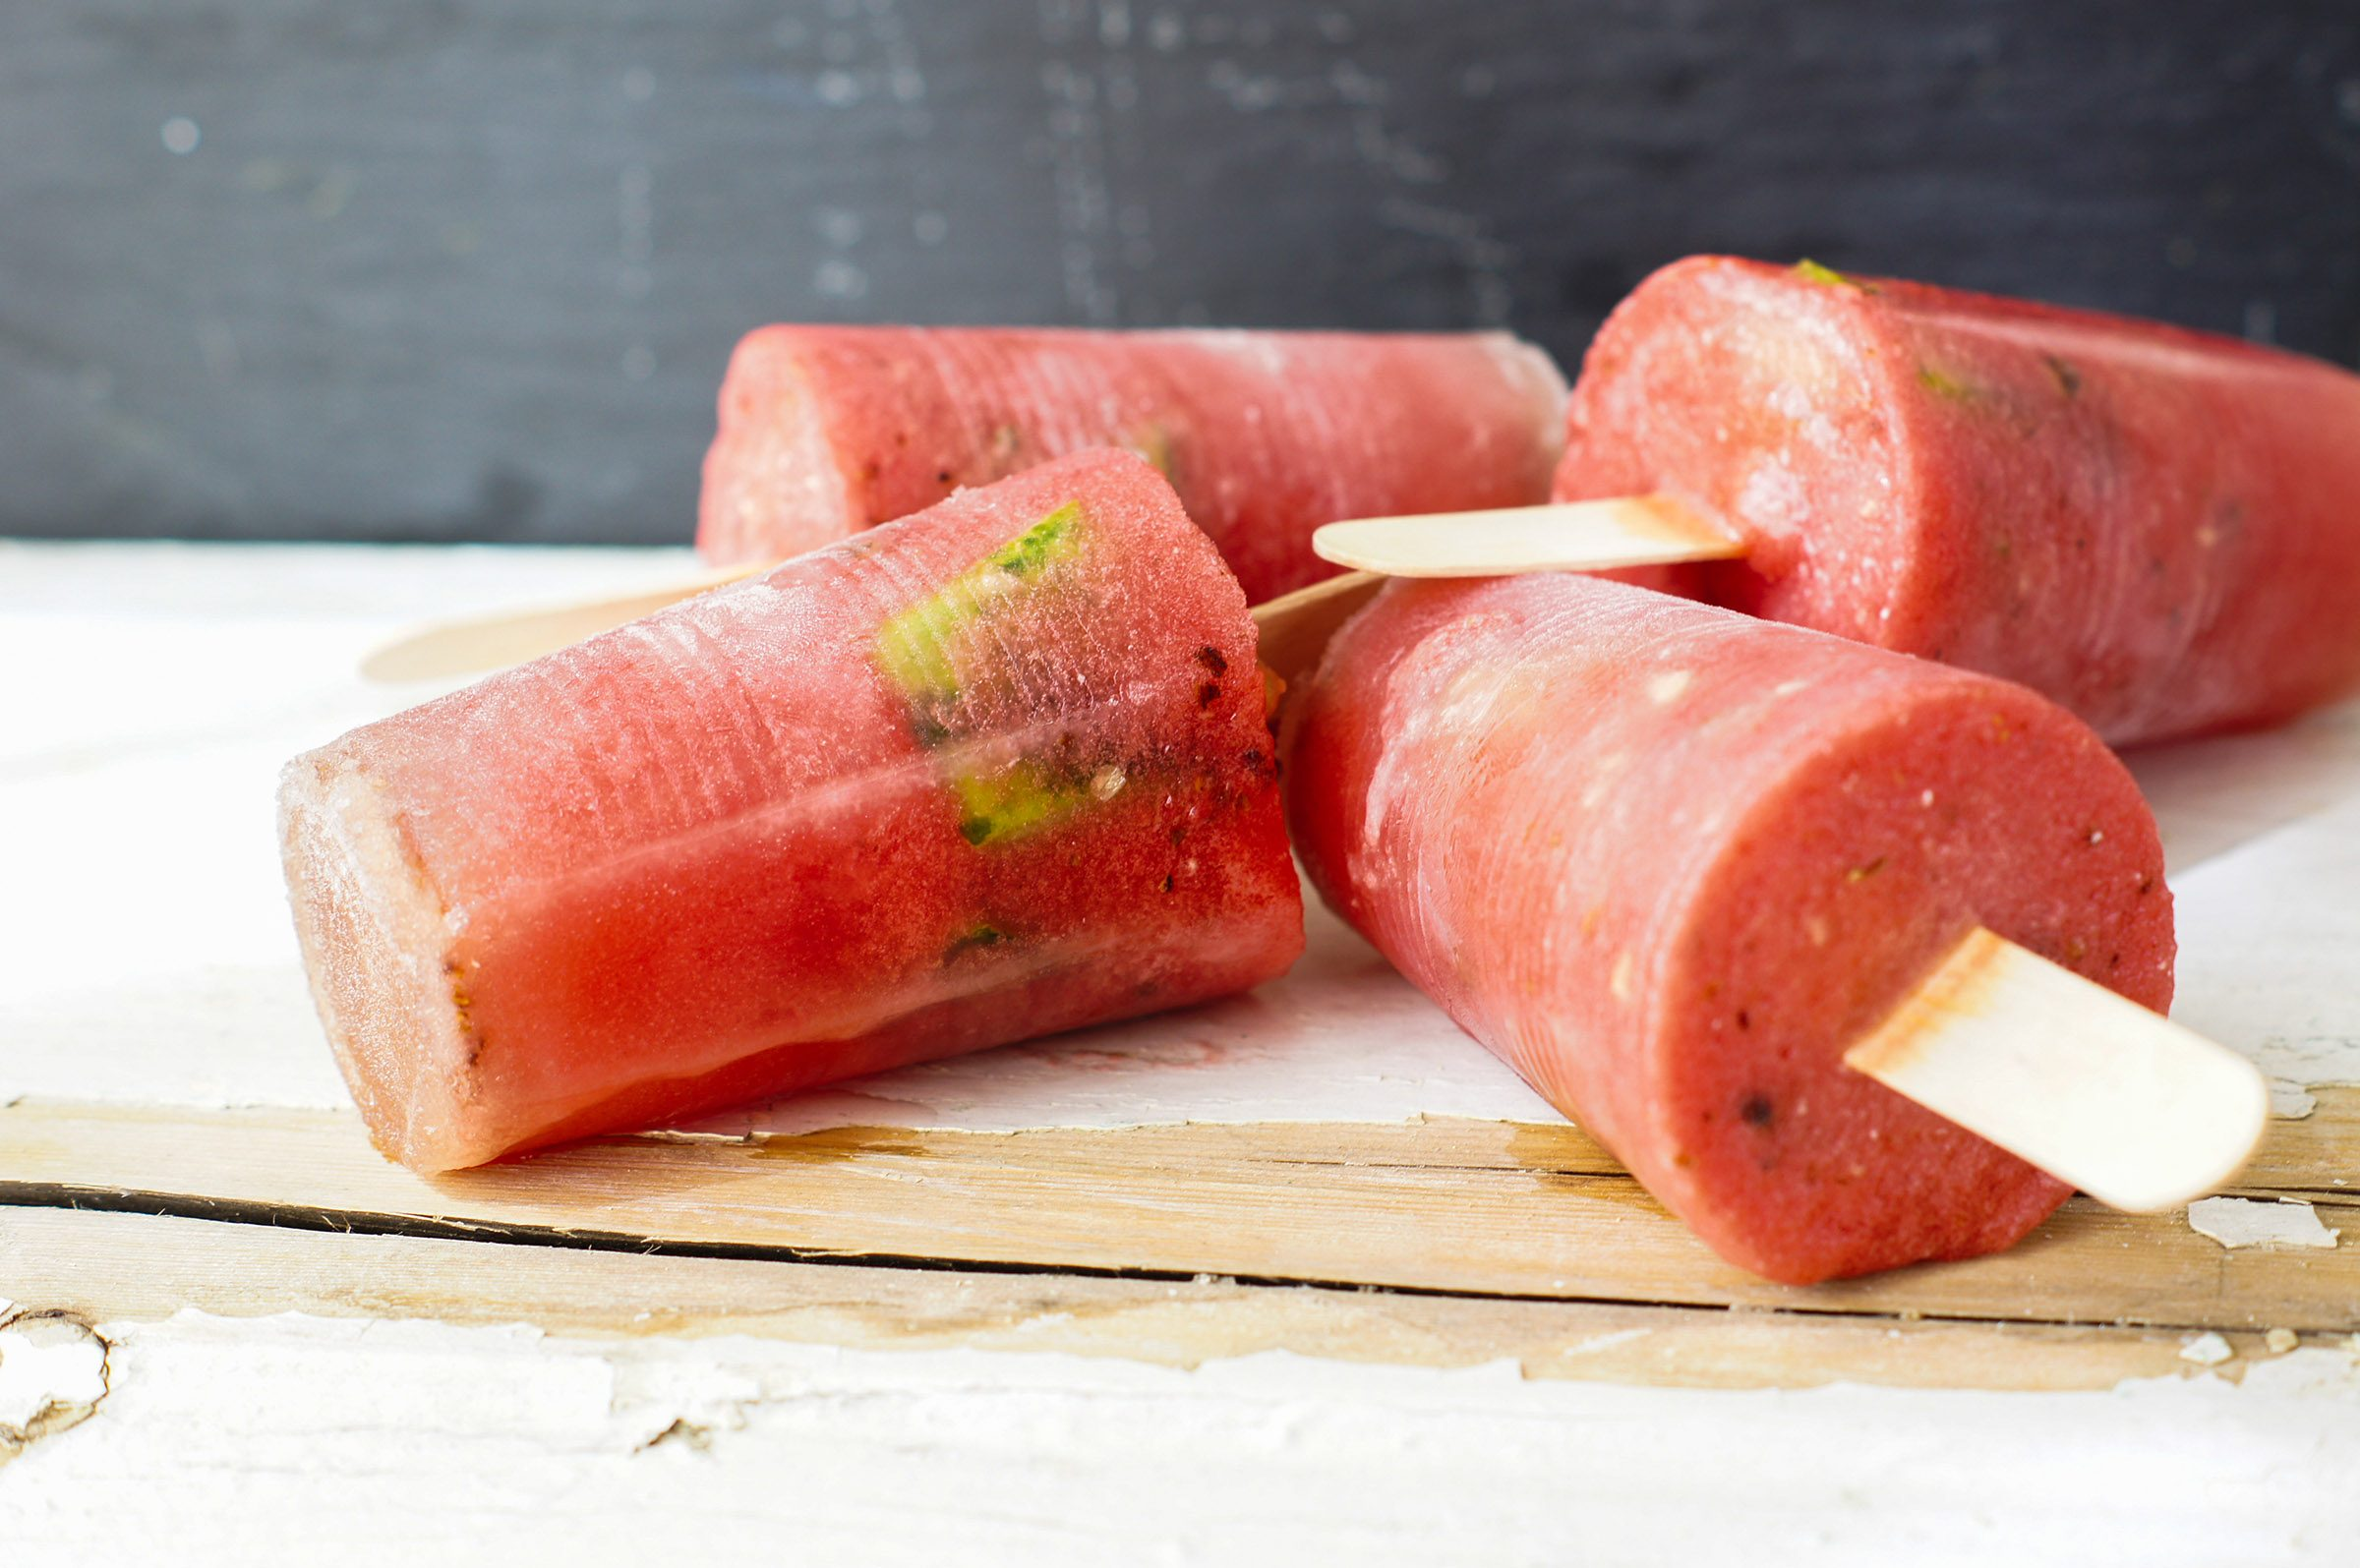 Homemade popsicles with watermelon and lime